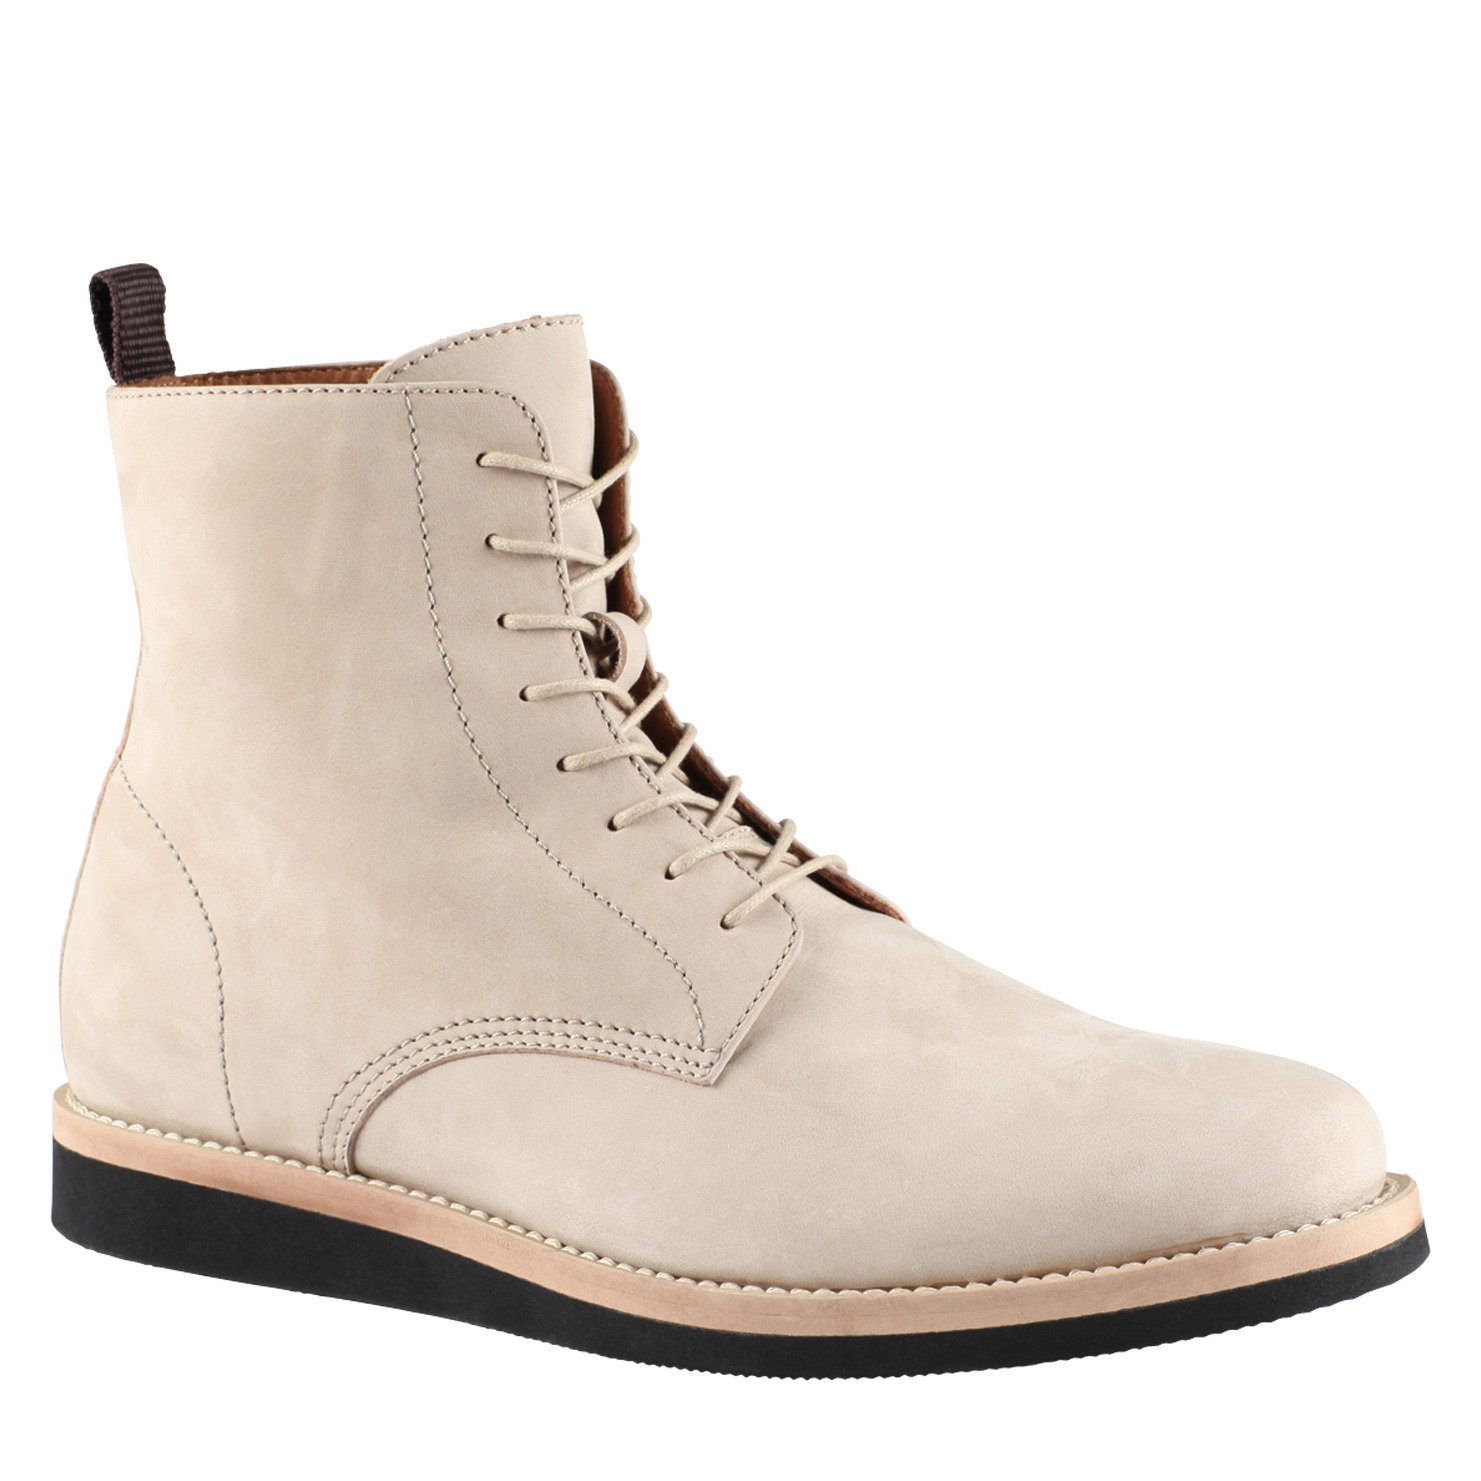 FULBERT Mens Dress Boots For Sale At ALDO Shoes